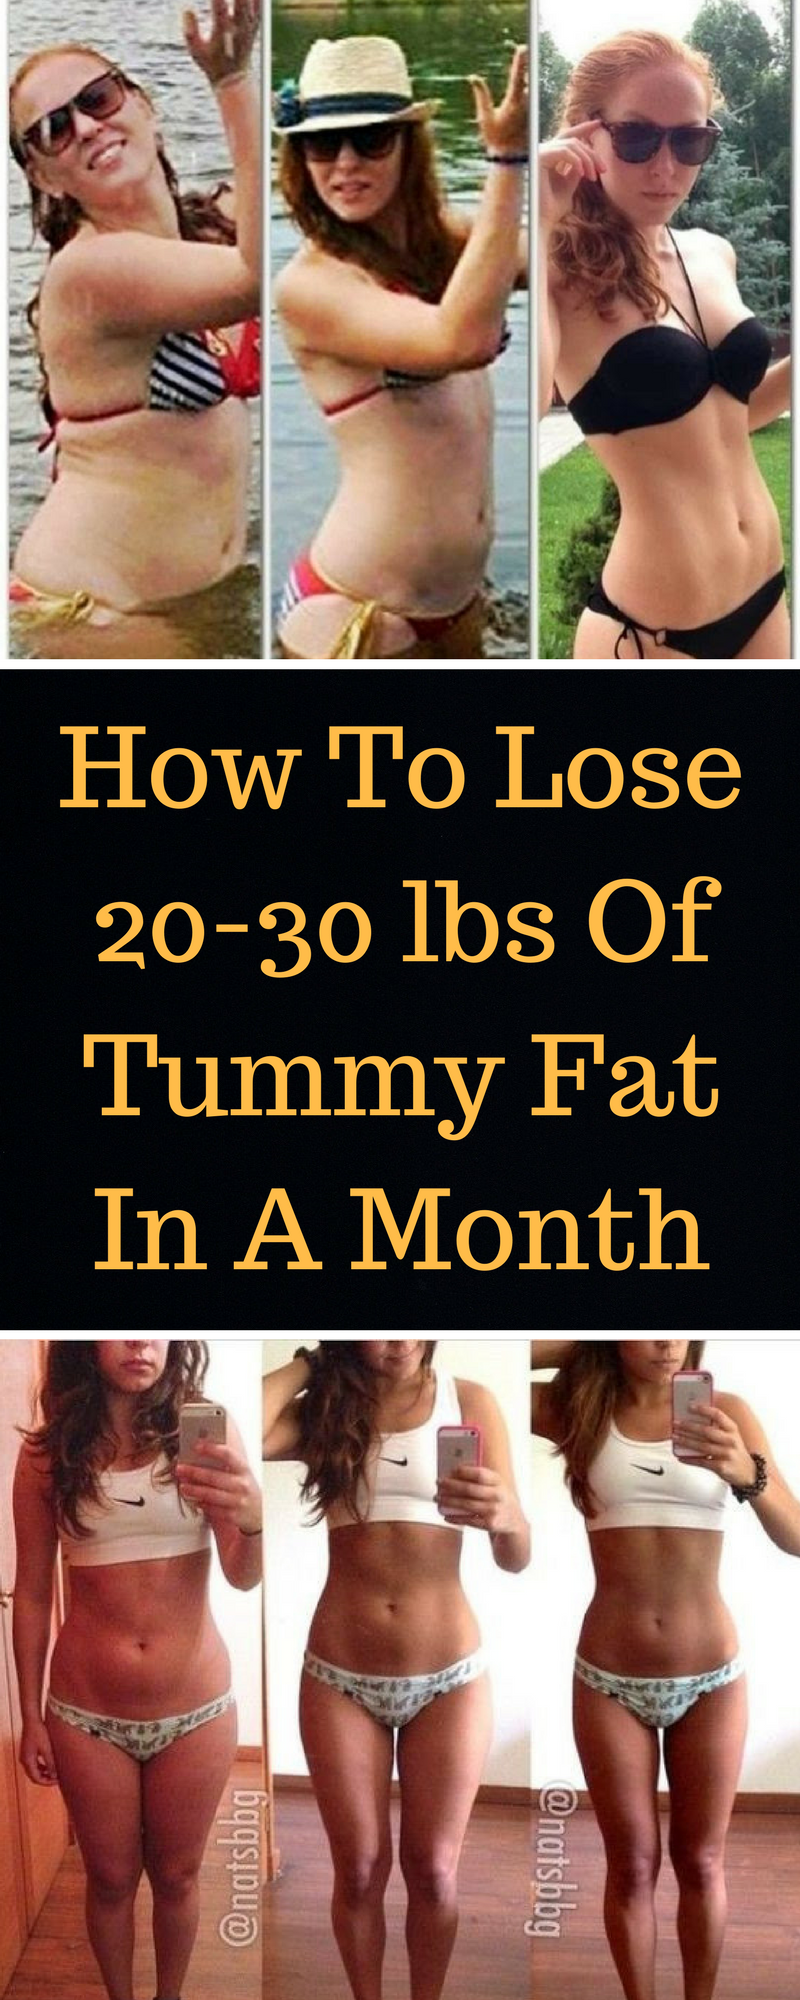 4 Steps to Lose 20 Pounds in 6 Weeks